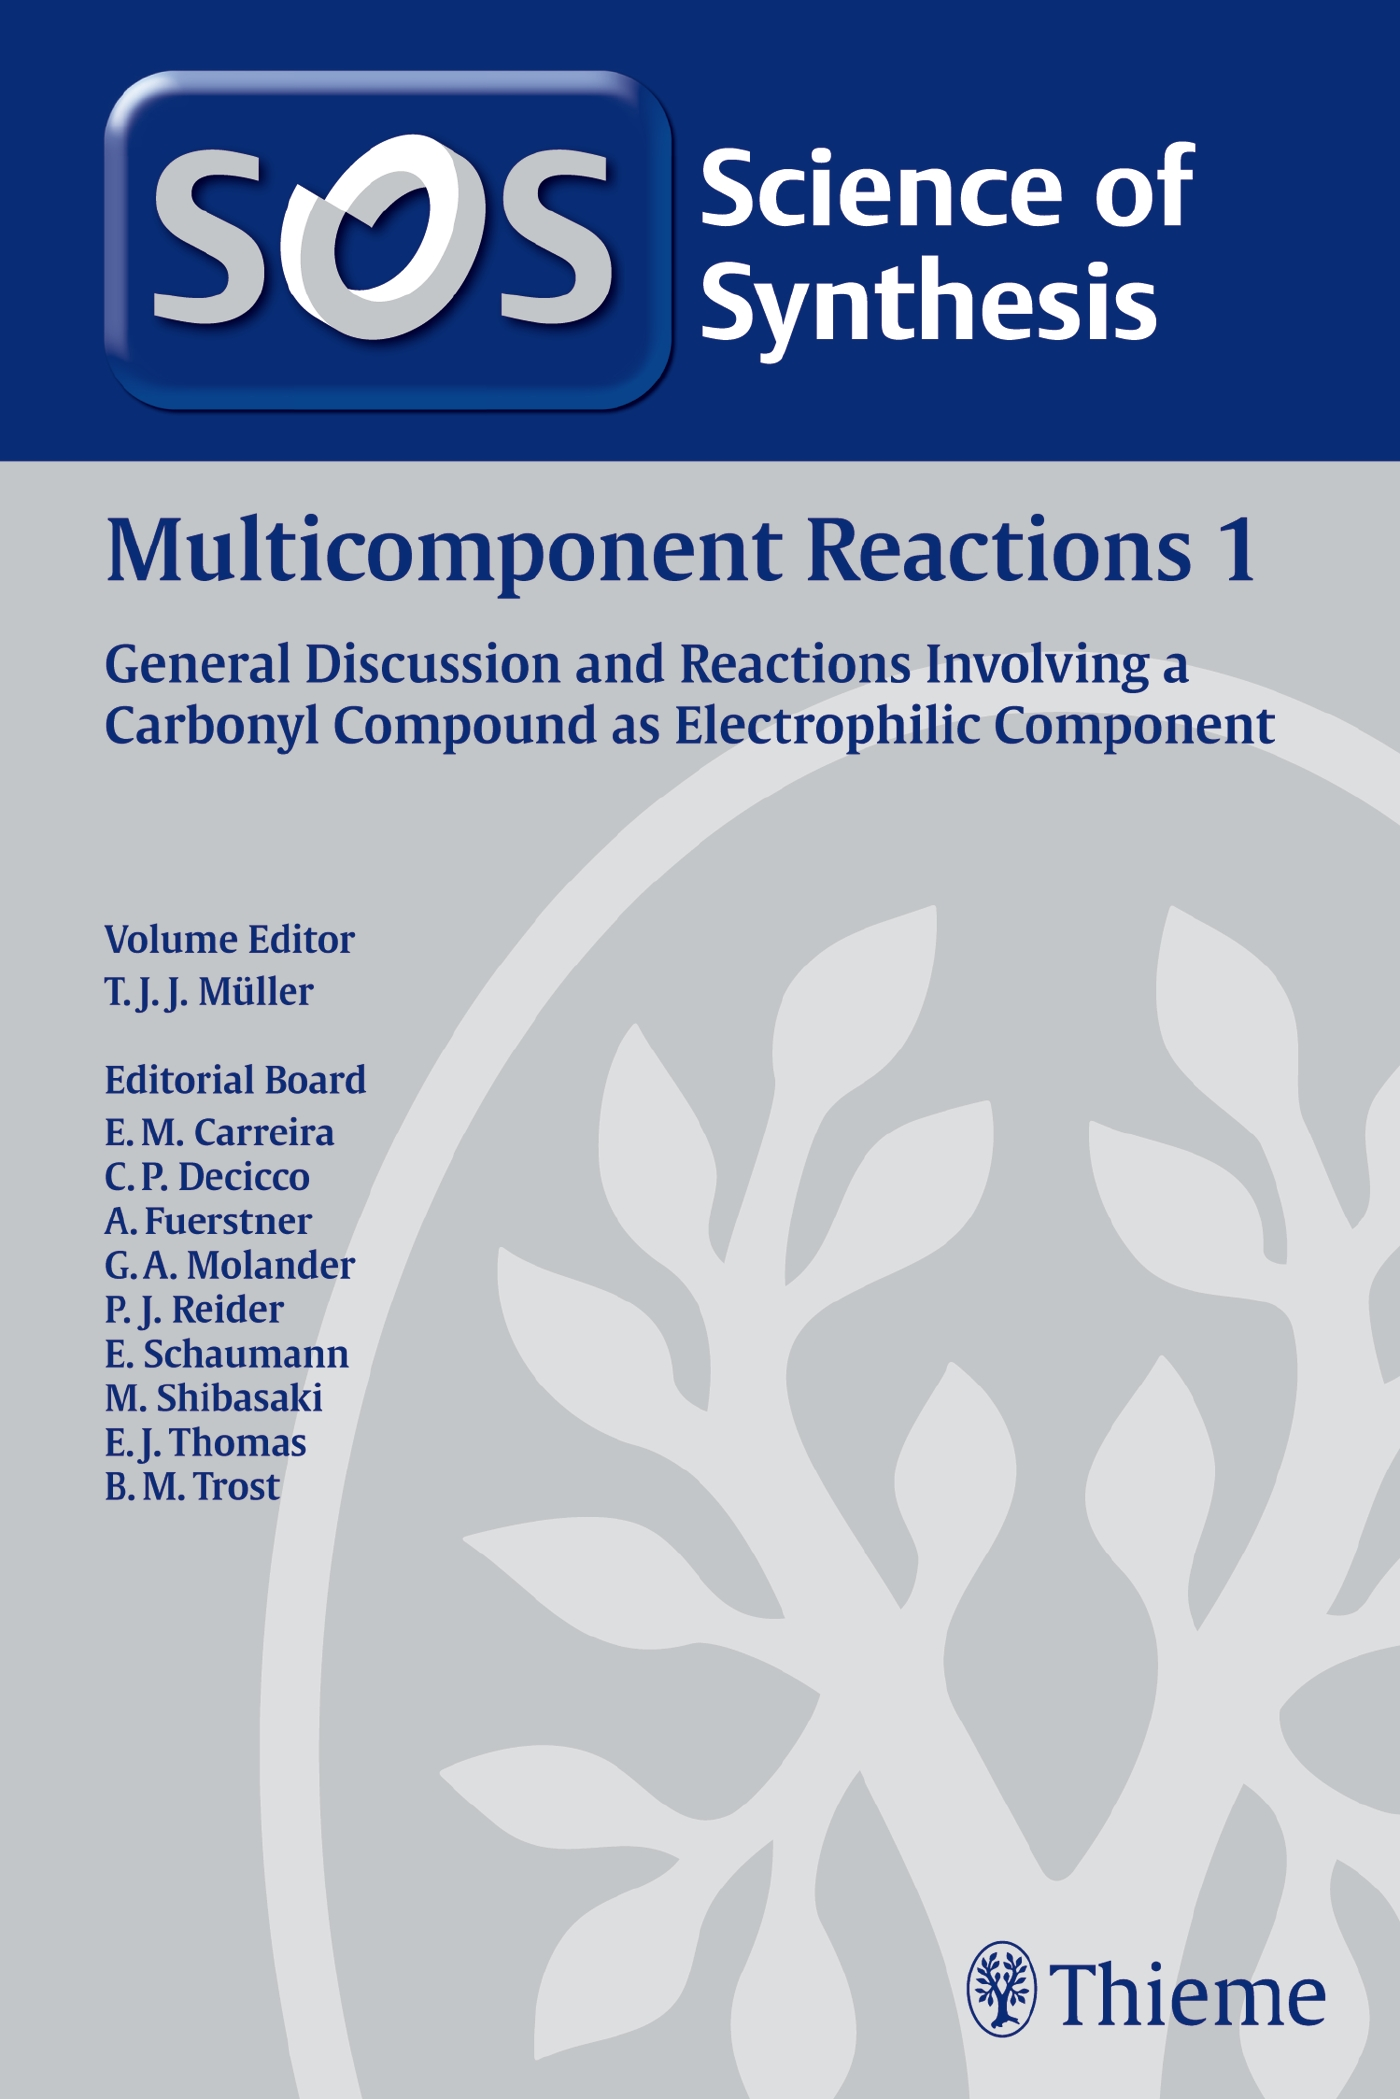 Science of Synthesis: Multicomponent Reactions Vol. 1